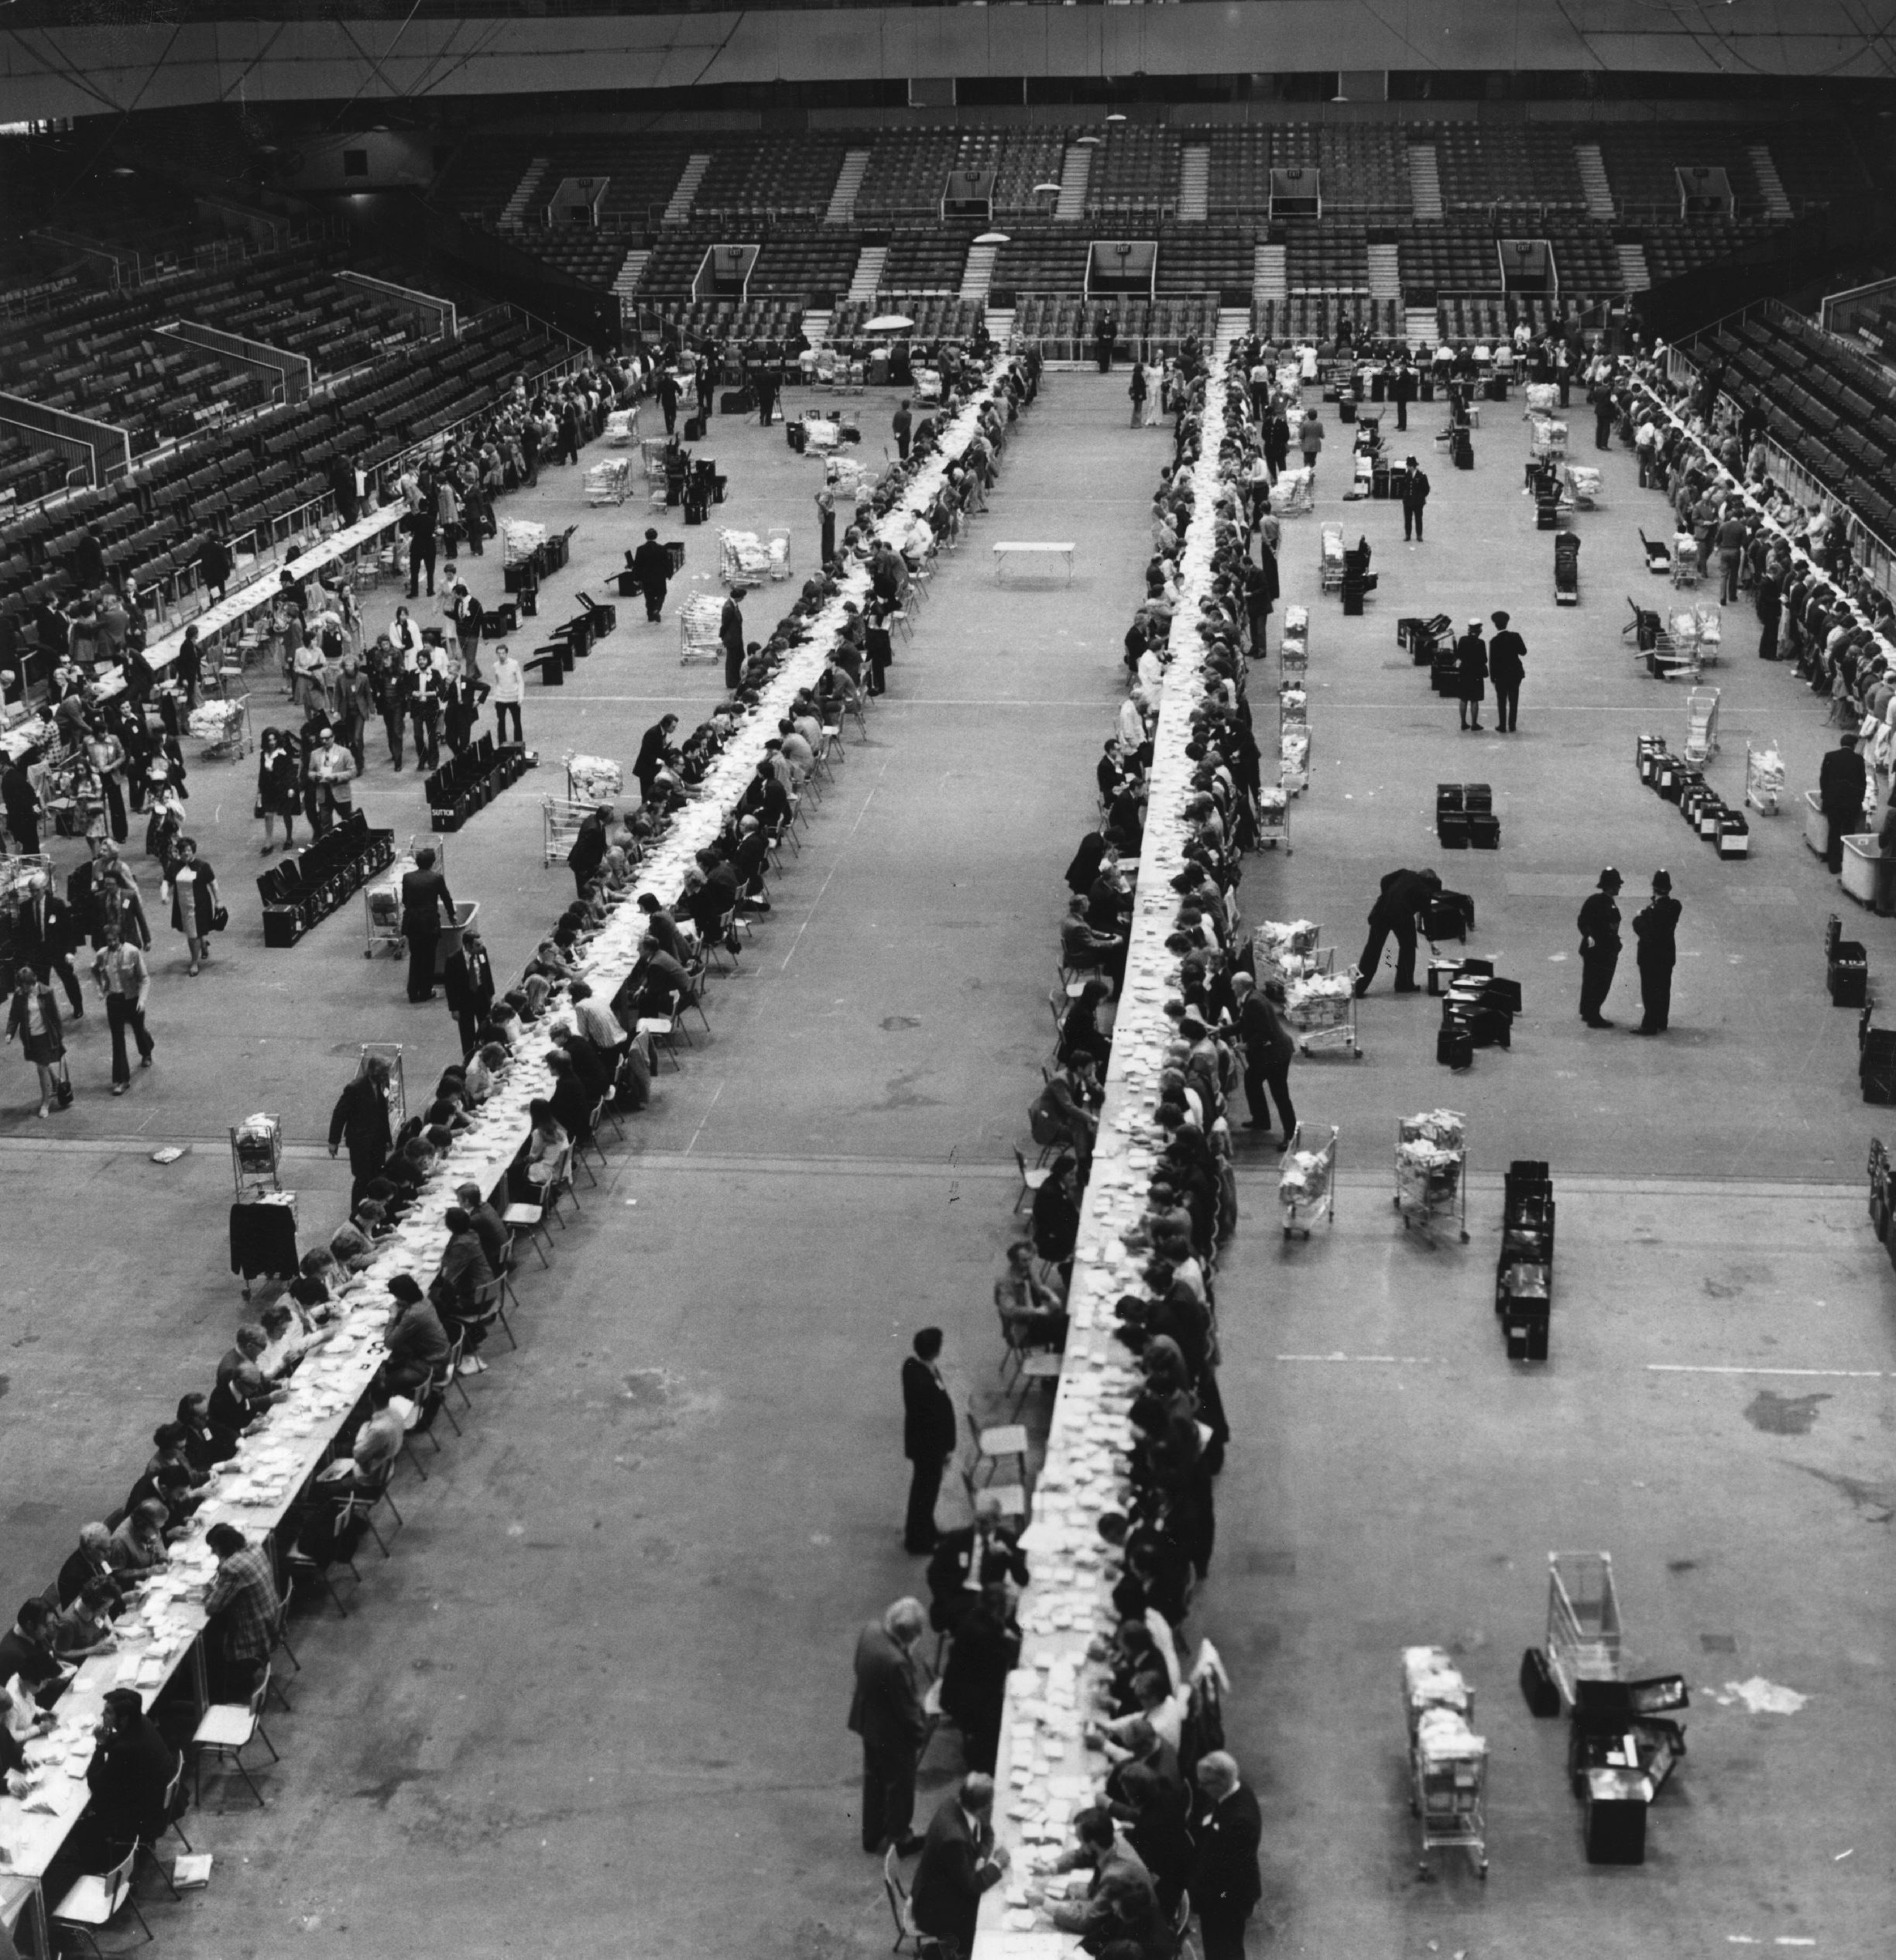 Votes in the Common Market Referendum being counted at Earl's Court Exhibition Center, London, June 6,1975.